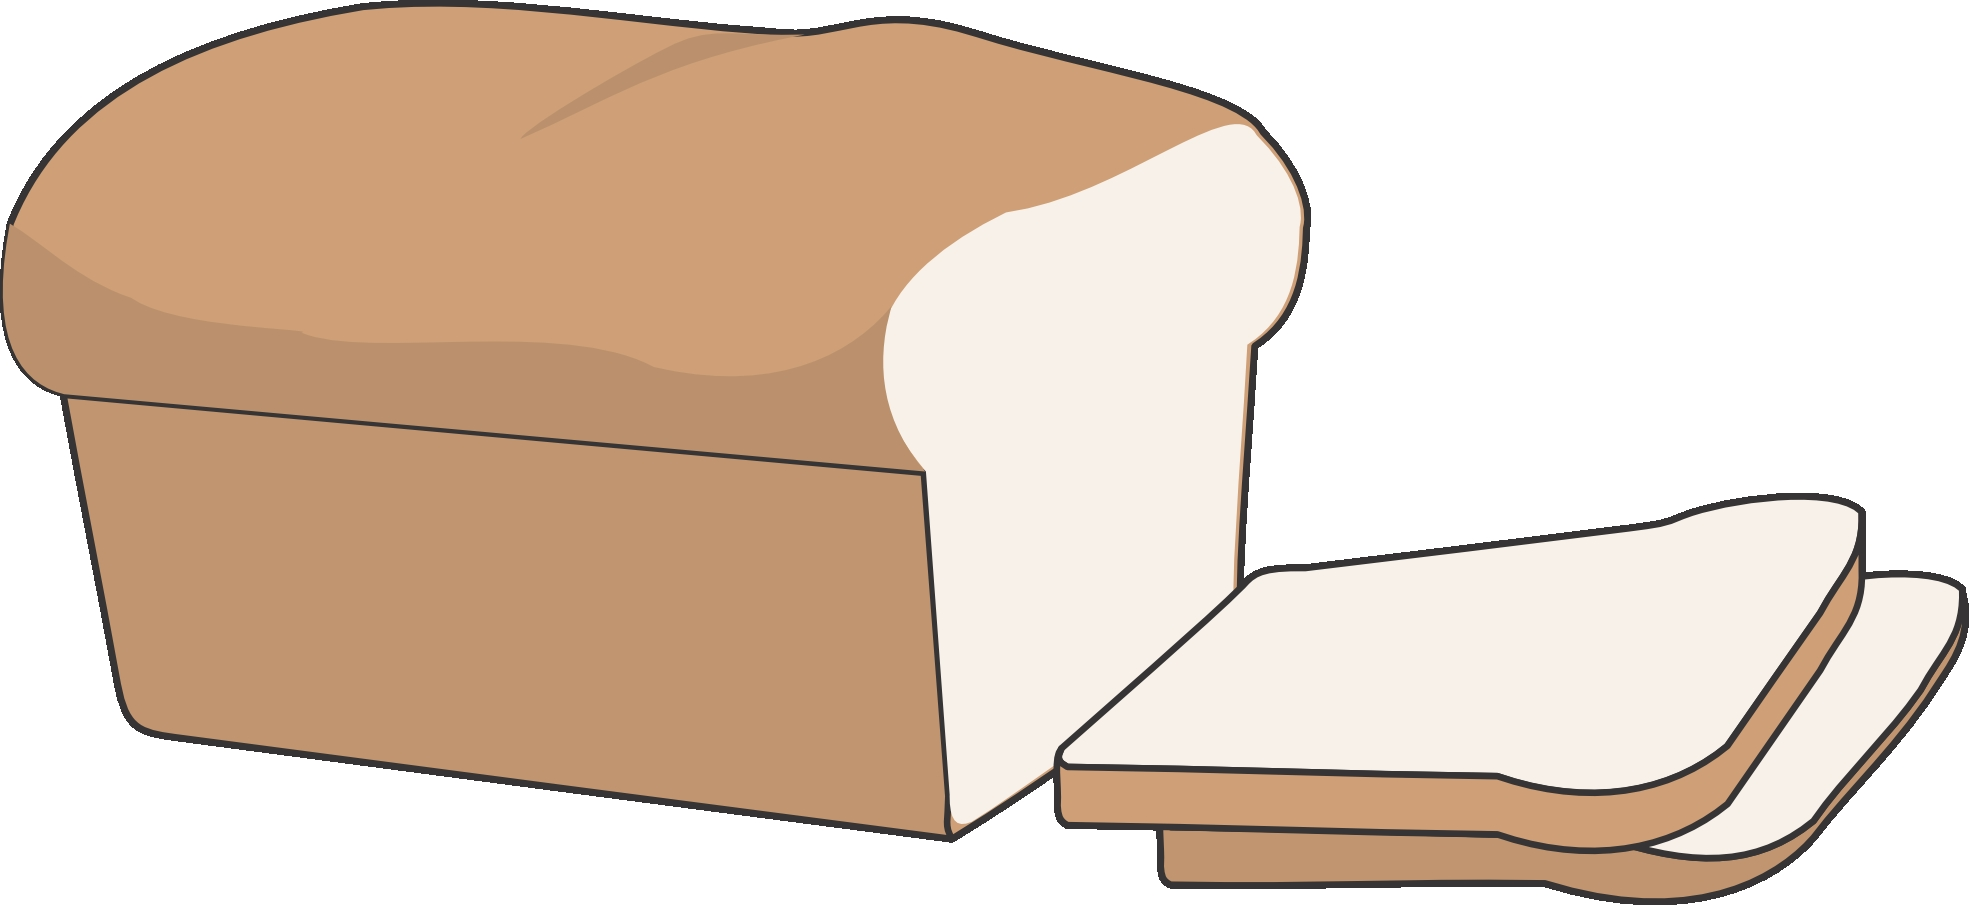 Loaf of bread clipart Inspirational Bread clipart free clip.